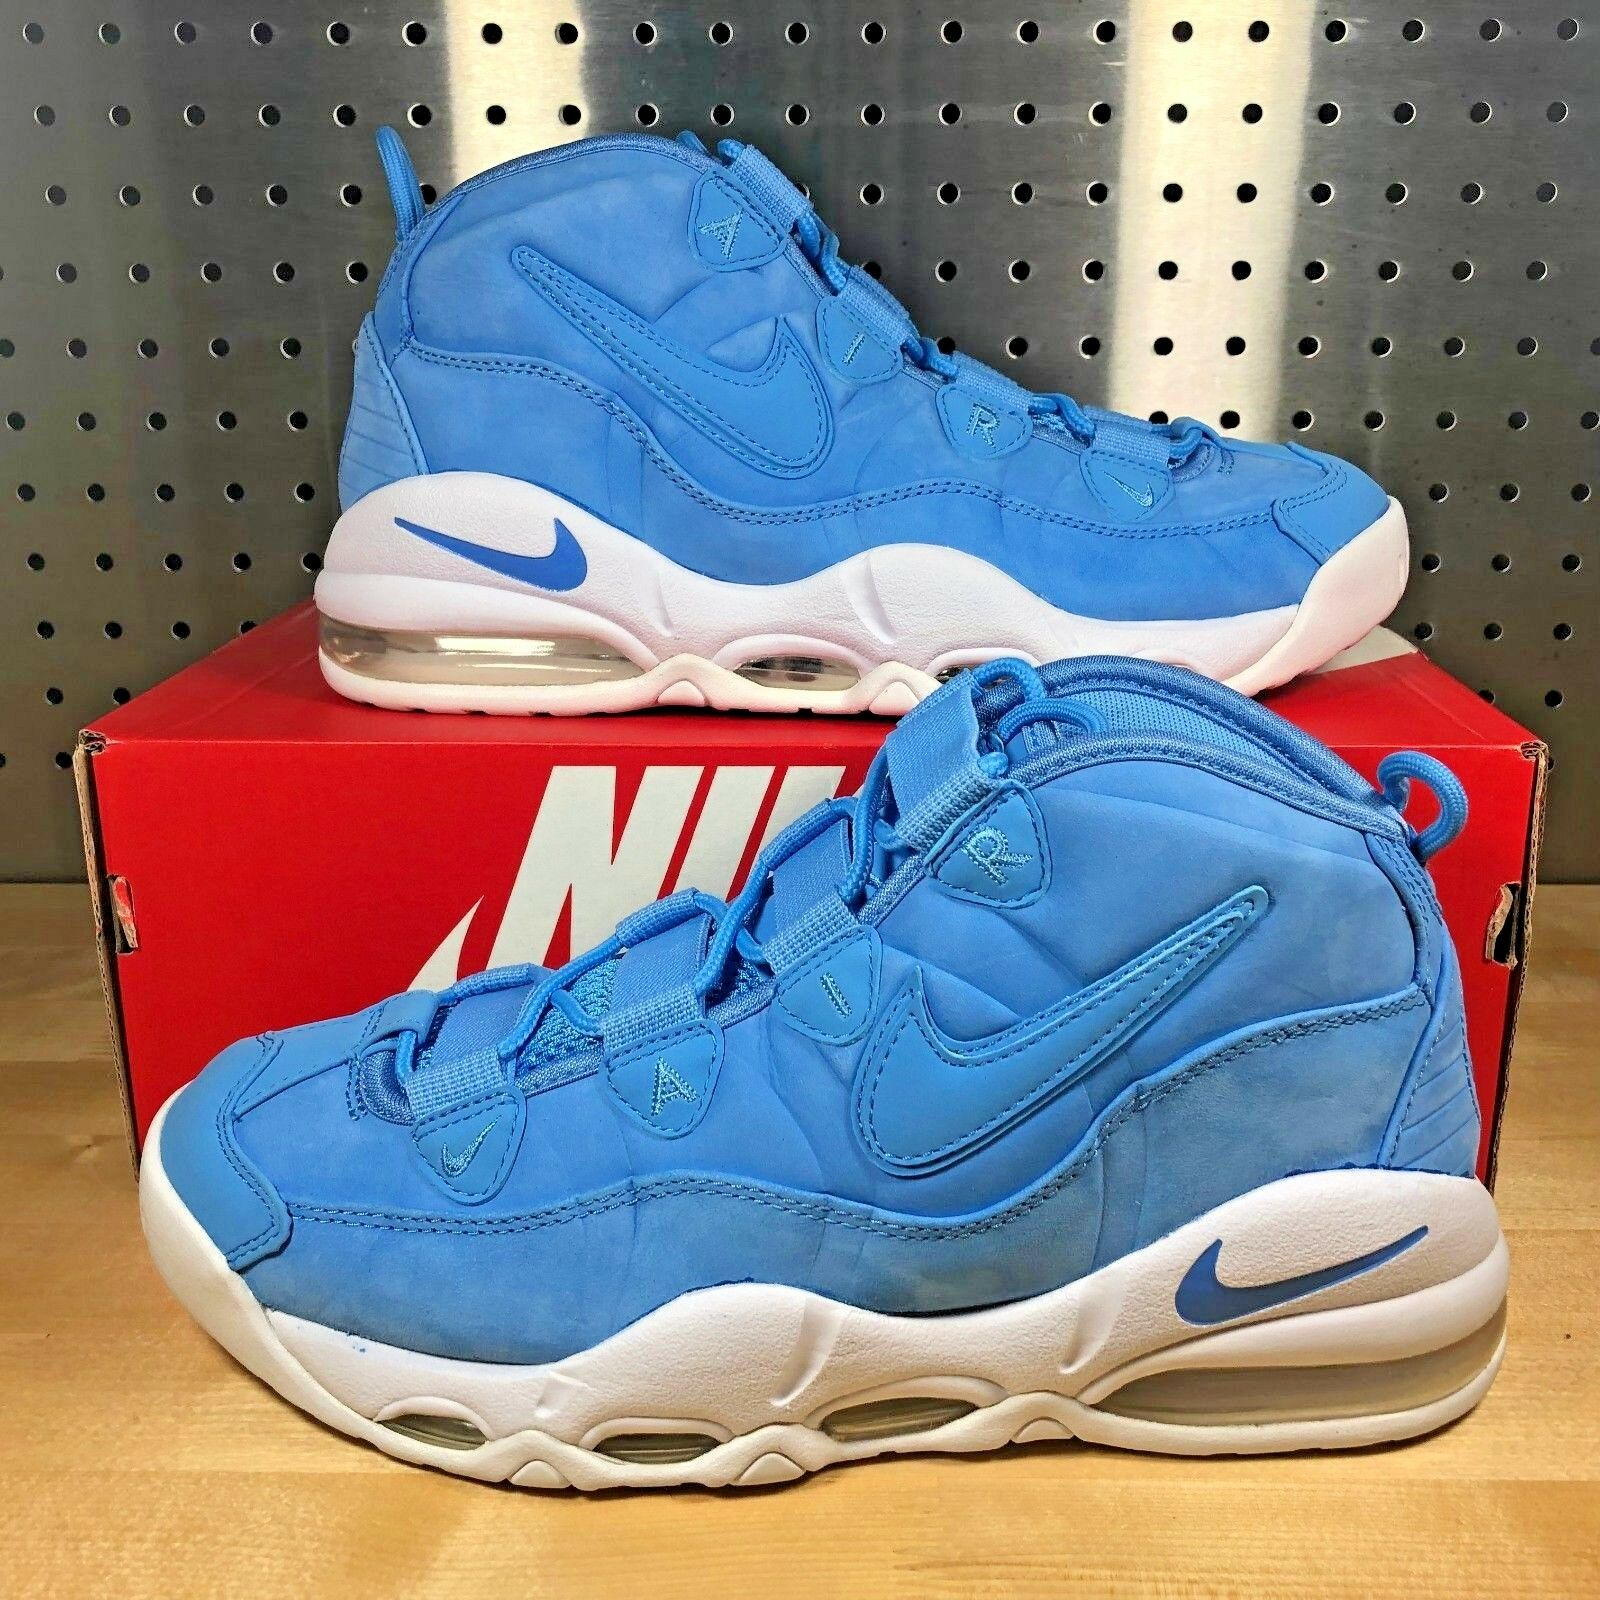 New Nike Air Max Uptempo 95 AS QS All Star University blueee UNC 922932-400 Sz 9.5